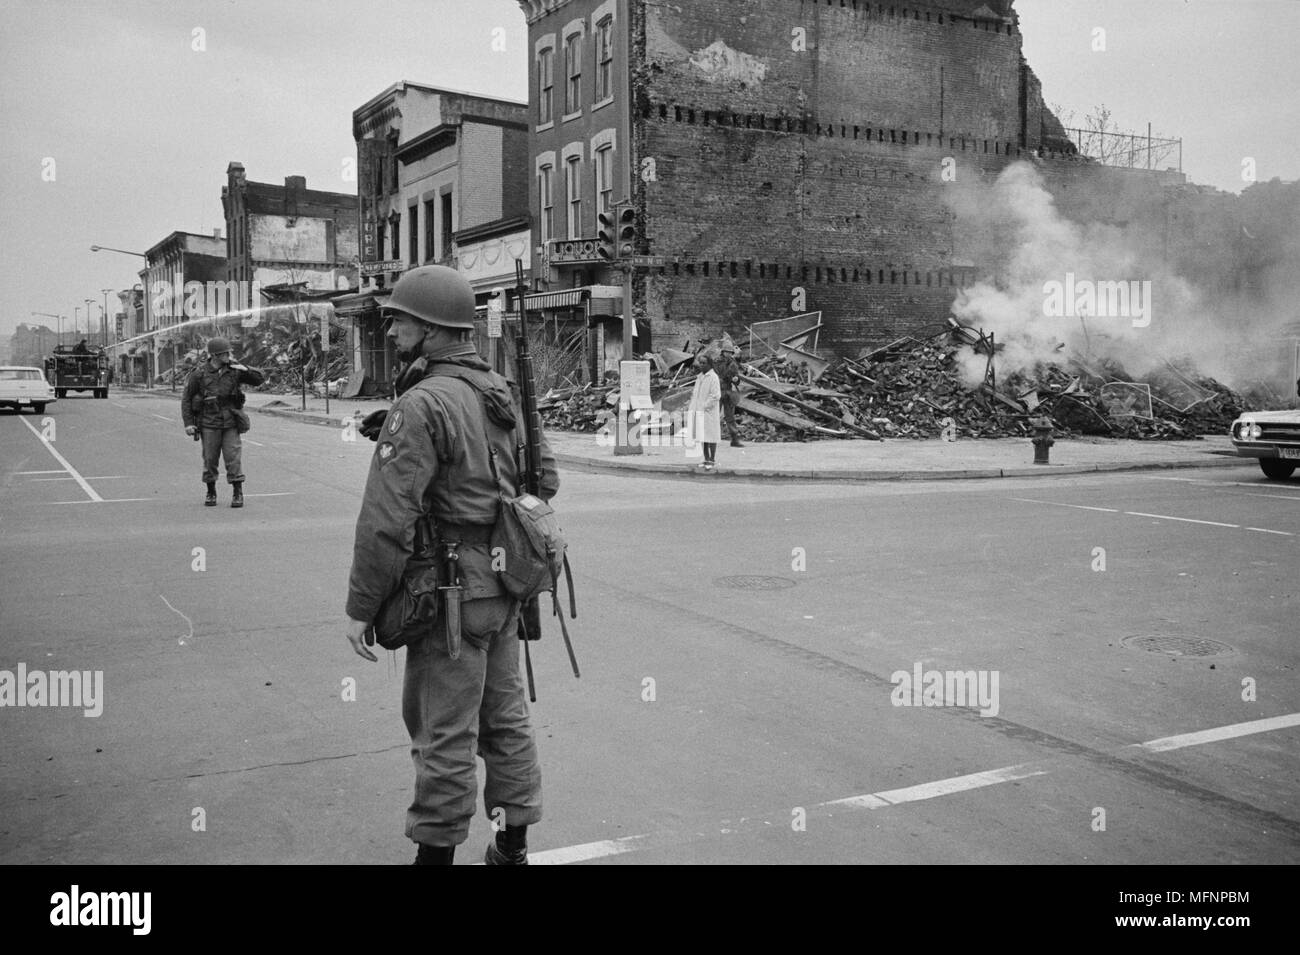 Soldier standing guard in a Washington, D.C., street with the ruins of buildings that were destroyed during the riots that followed the assassination of Martin Luther King Jr., 8 April 1968. Photographer:  Warren K  Leffler. - Stock Image